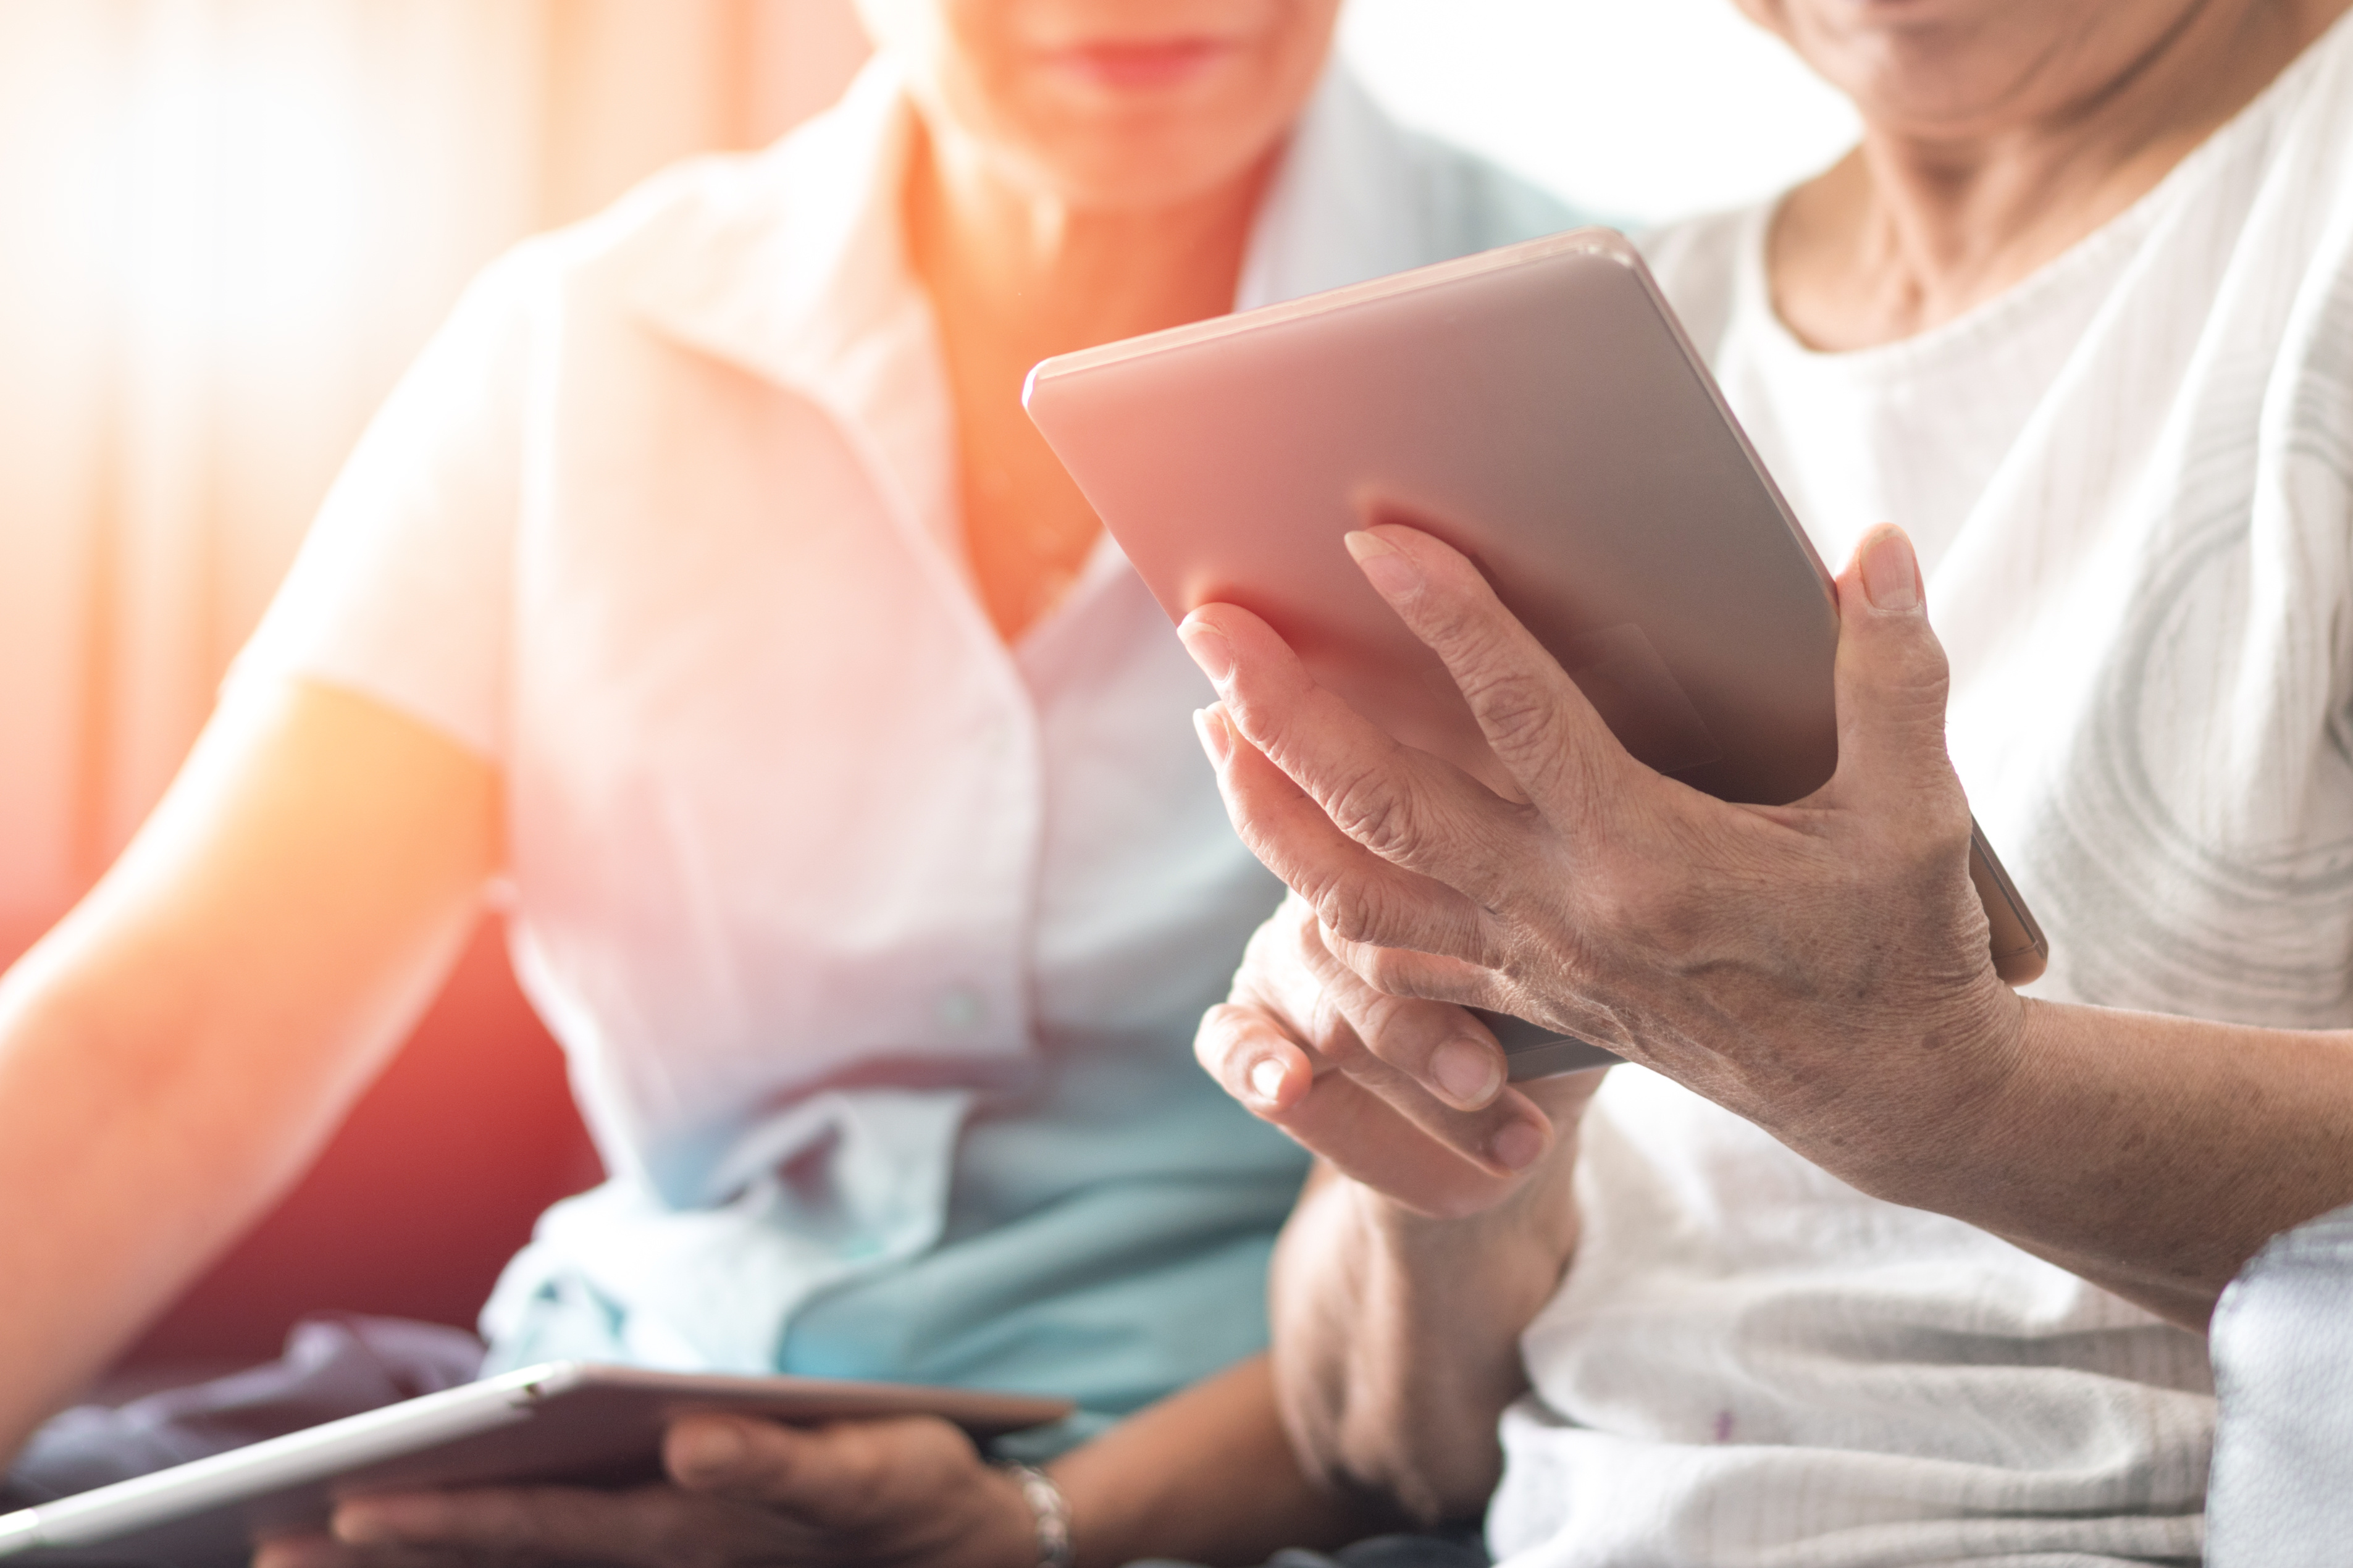 Technology in care